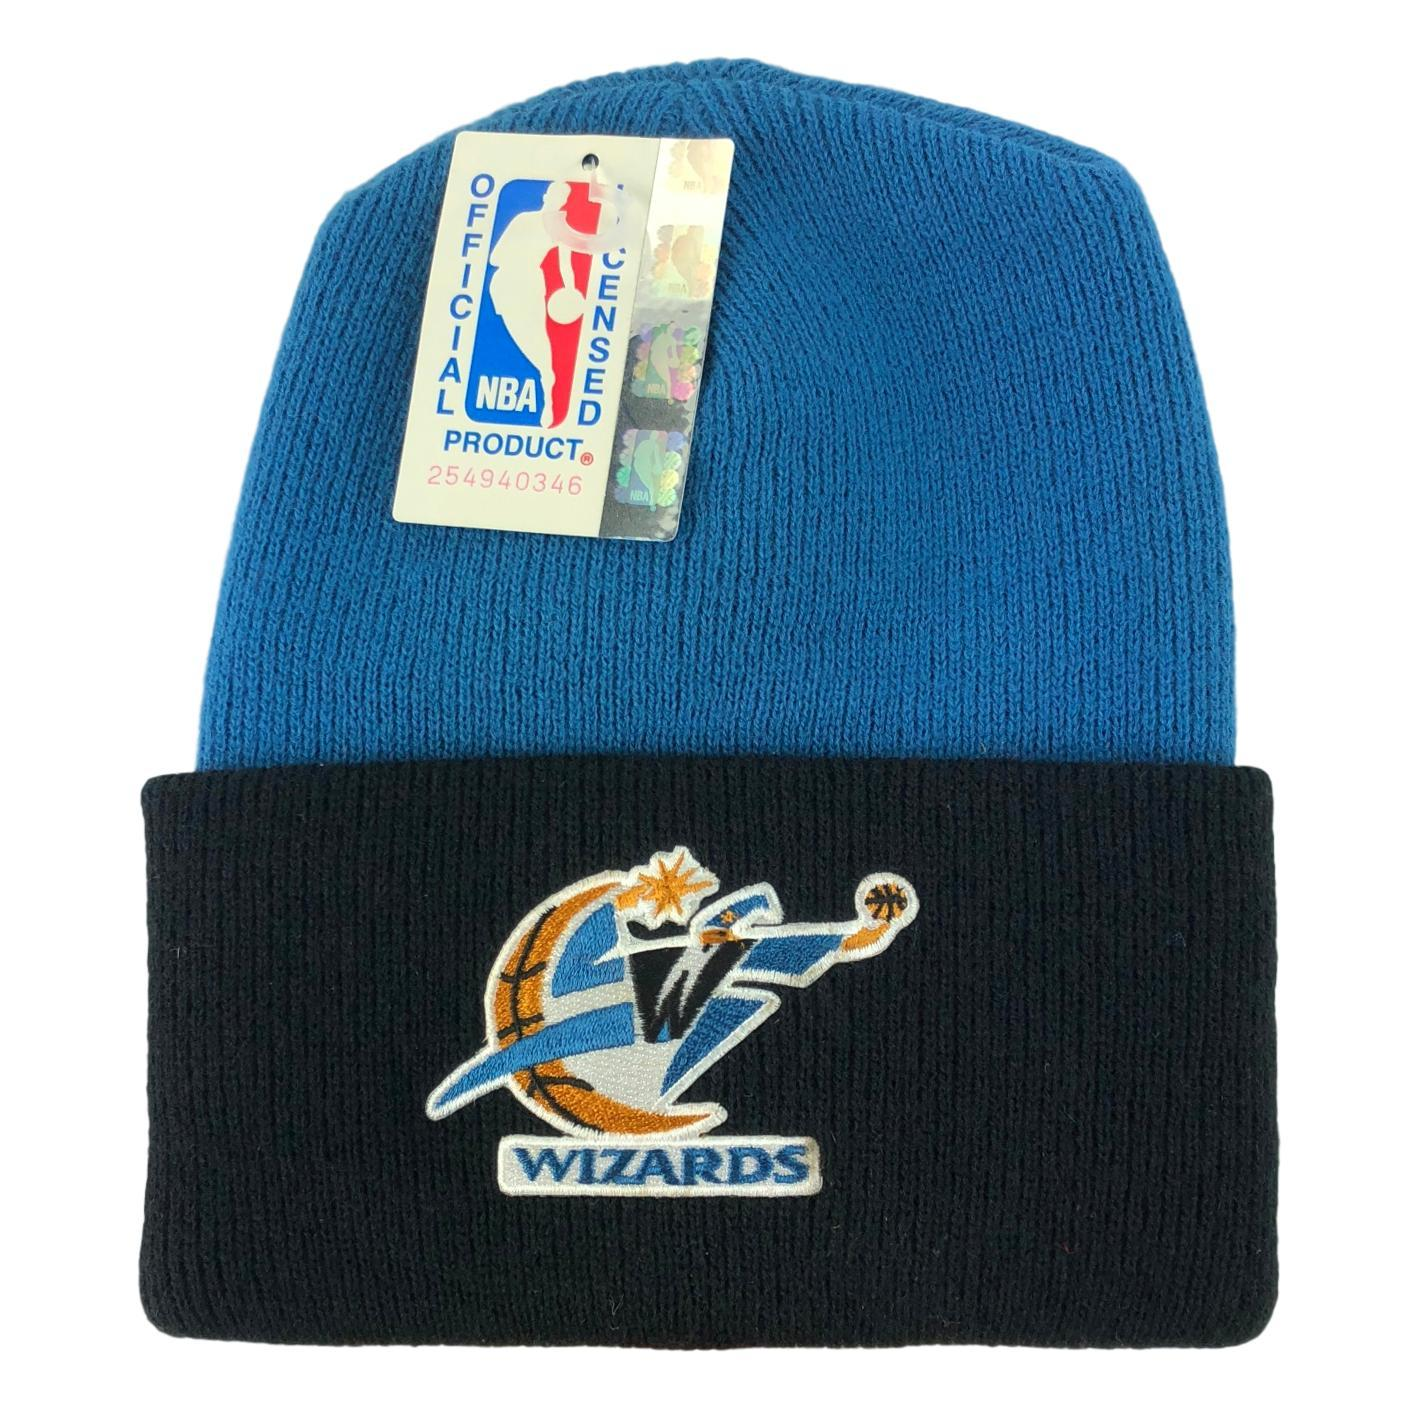 Vintage Washington Wizards Beanie